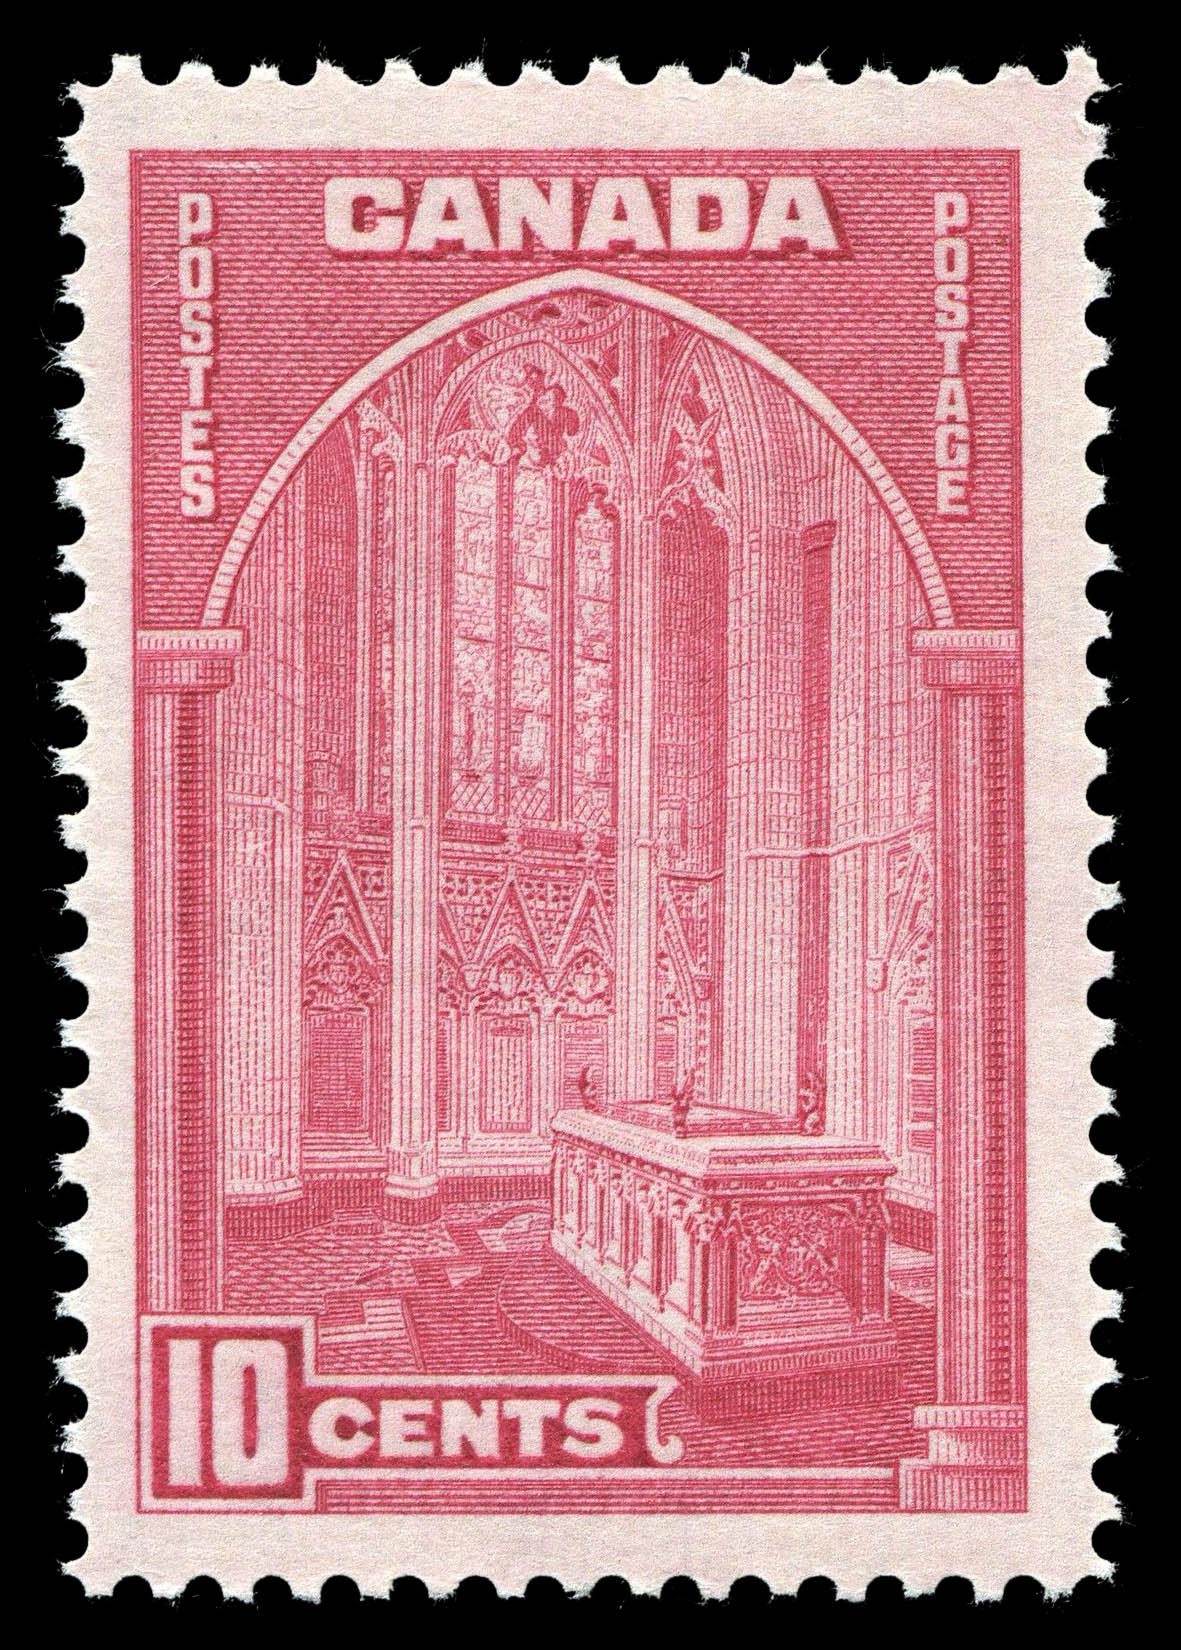 Memorial Chamber, Parliament Buildings, Ottawa Canada Postage Stamp